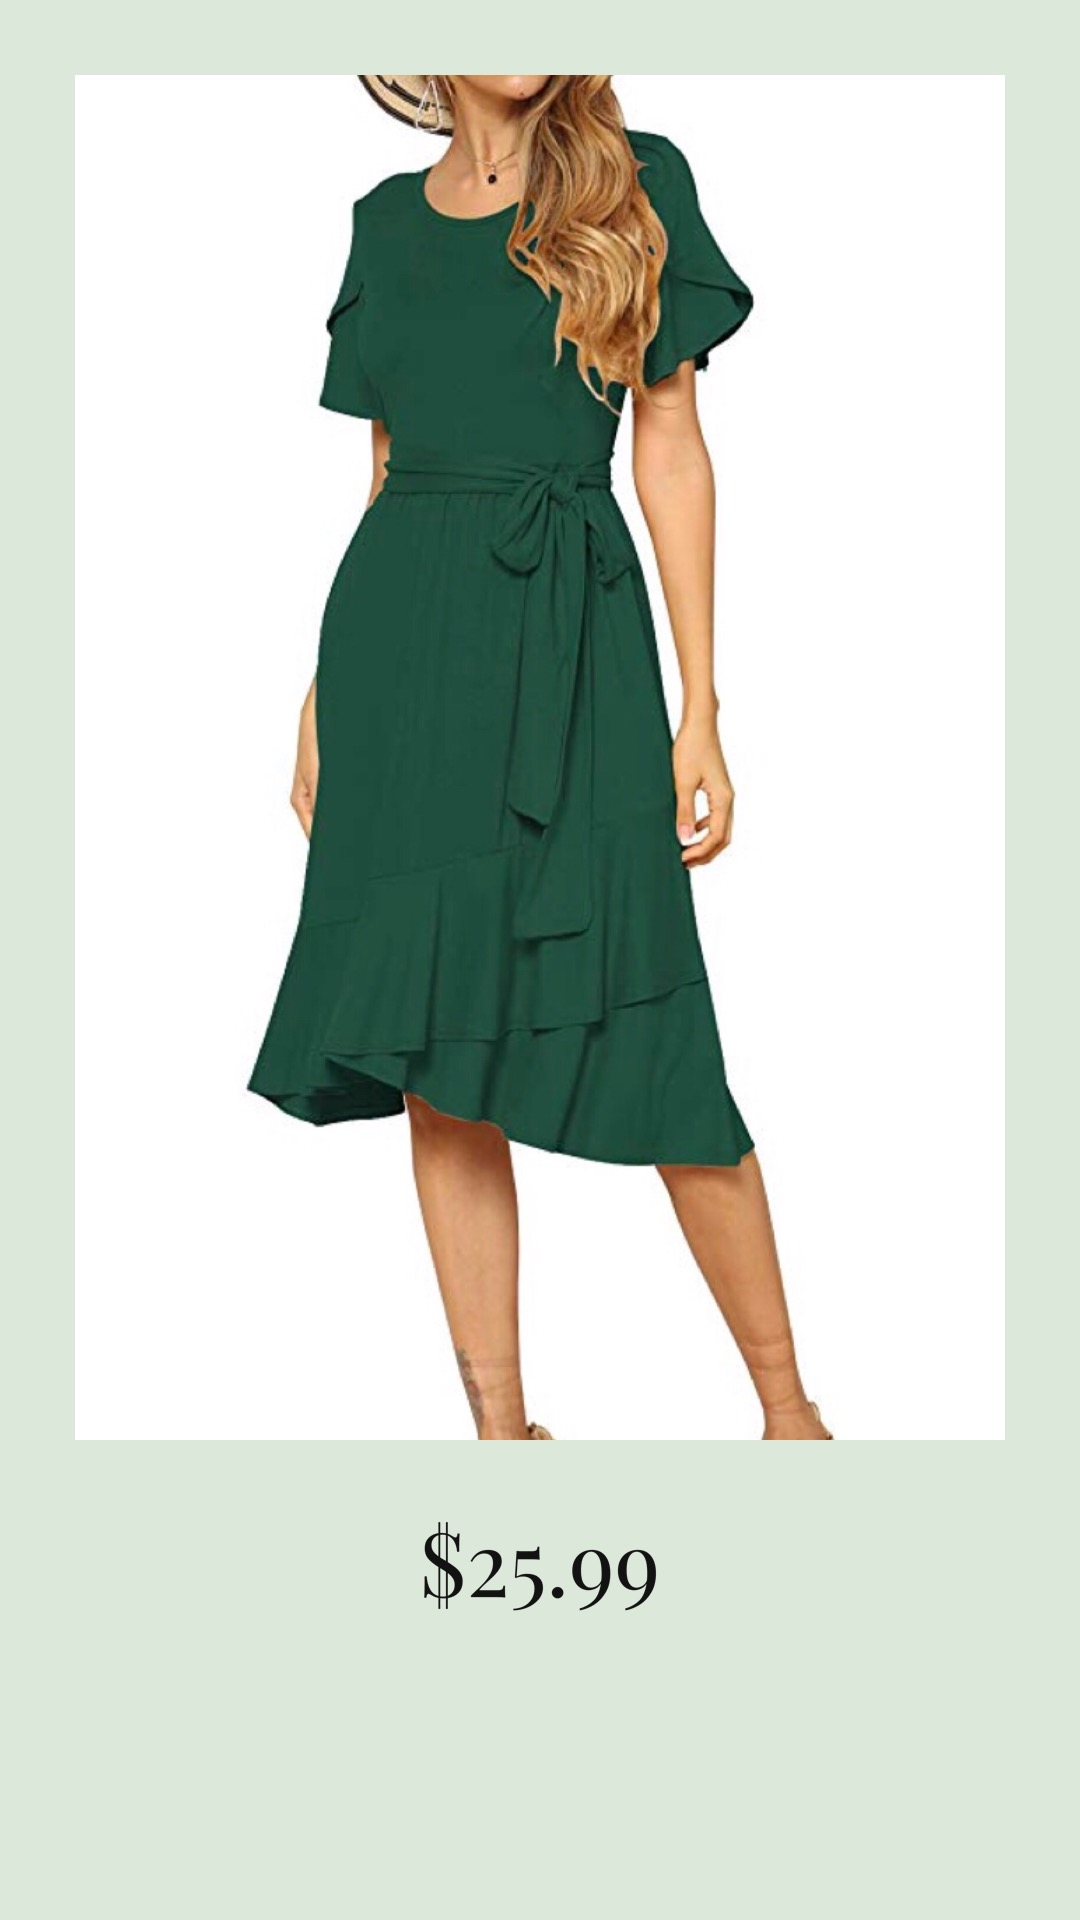 Flowy Mid Length Green Dress